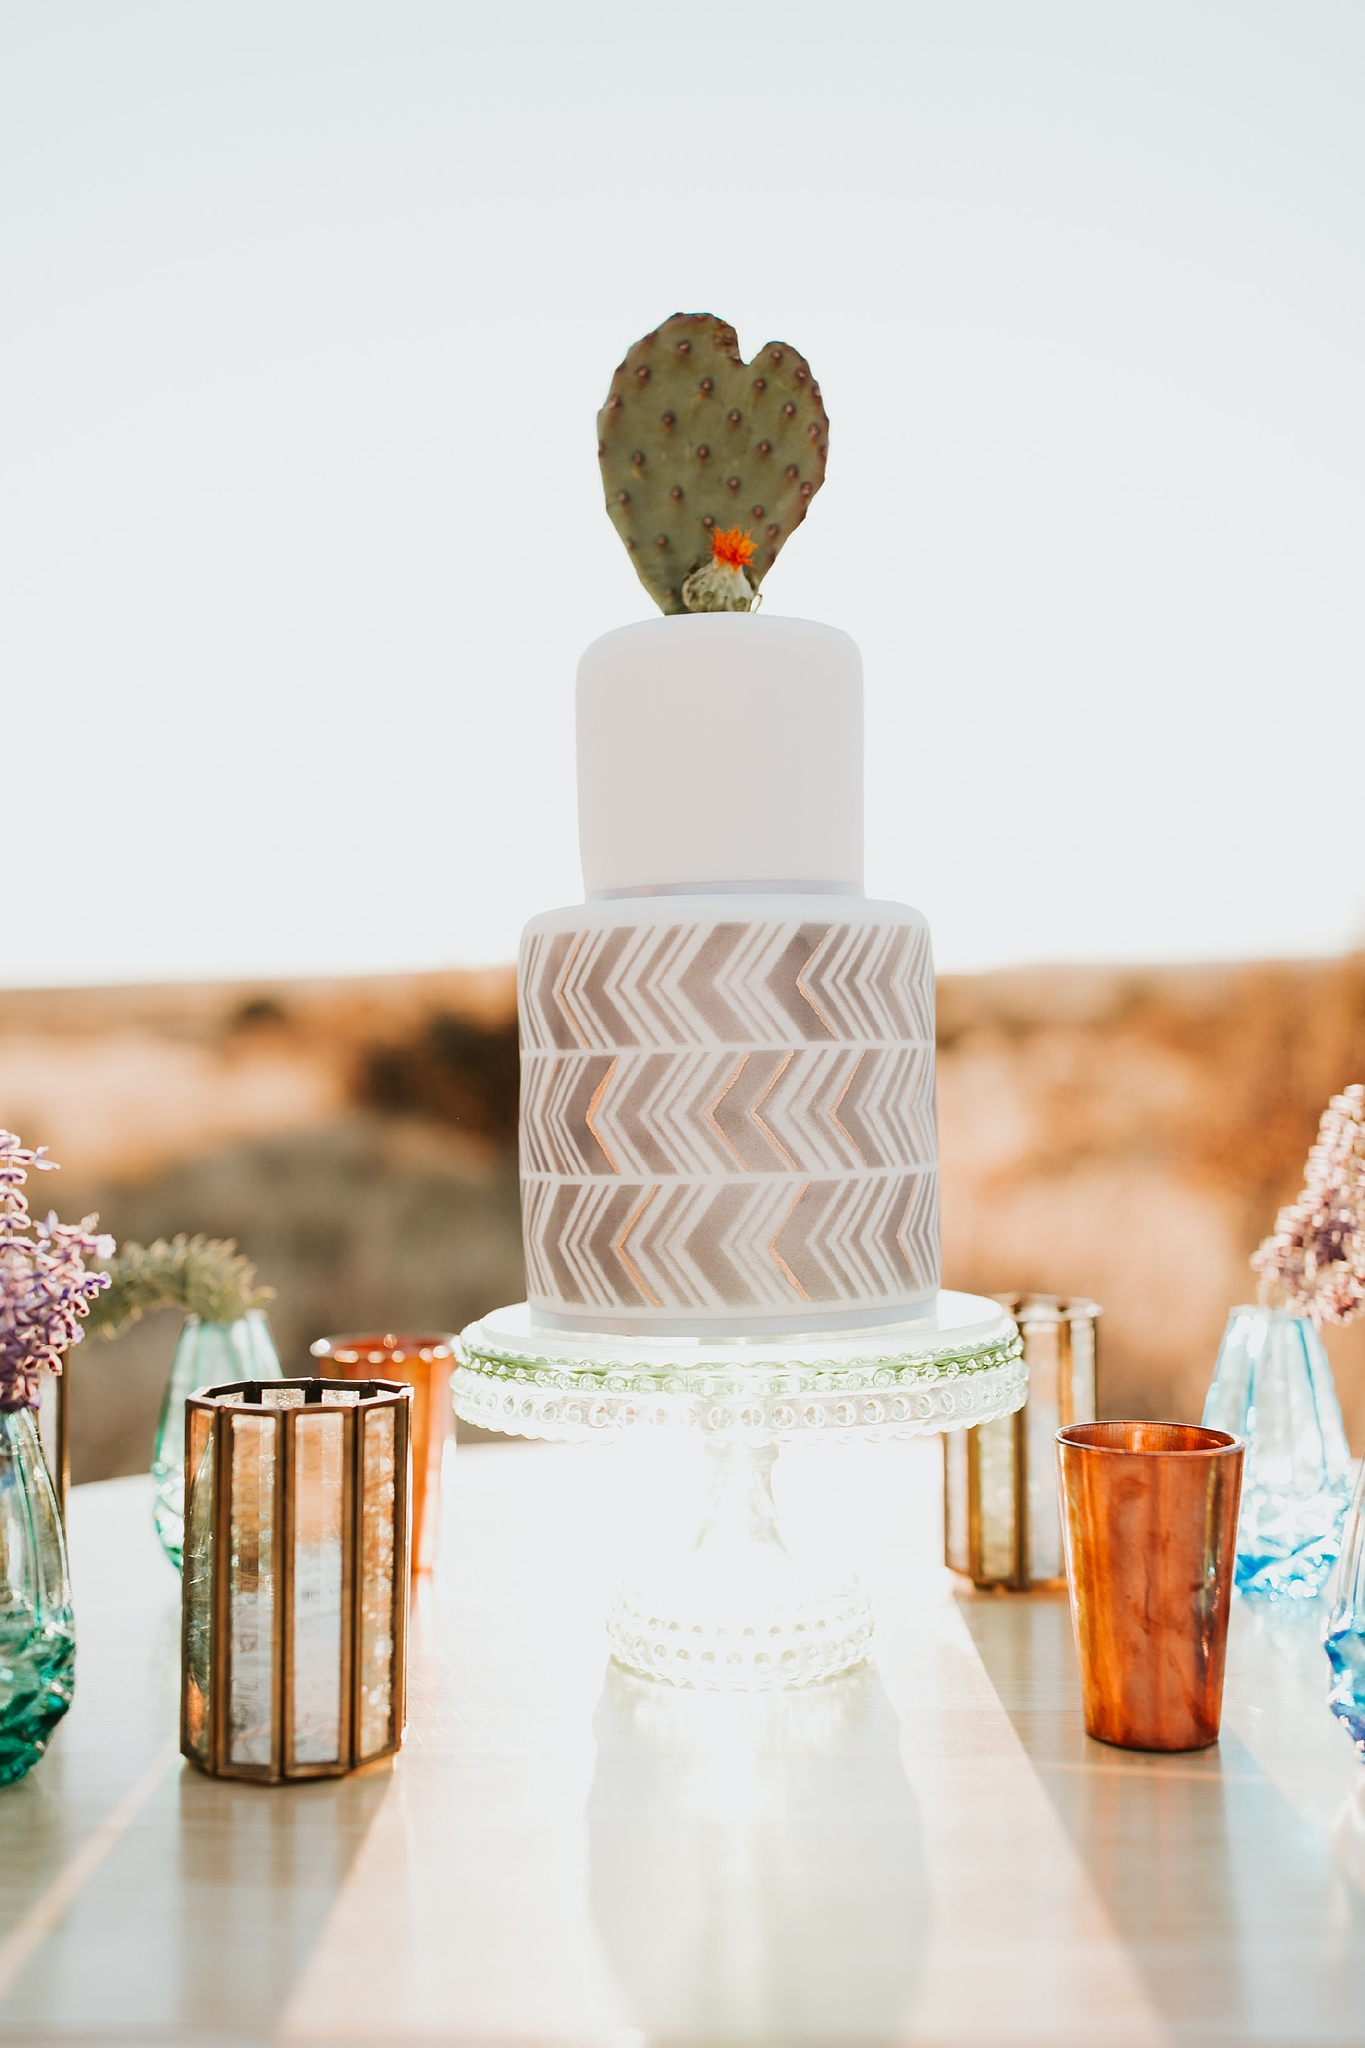 Alicia+lucia+photography+-+albuquerque+wedding+photographer+-+santa+fe+wedding+photography+-+new+mexico+wedding+photographer+-+new+mexico+wedding+-+new+mexico+wedding+-+wedding+florals+-+desert+wedding+-+wedding+trends_0079.jpg